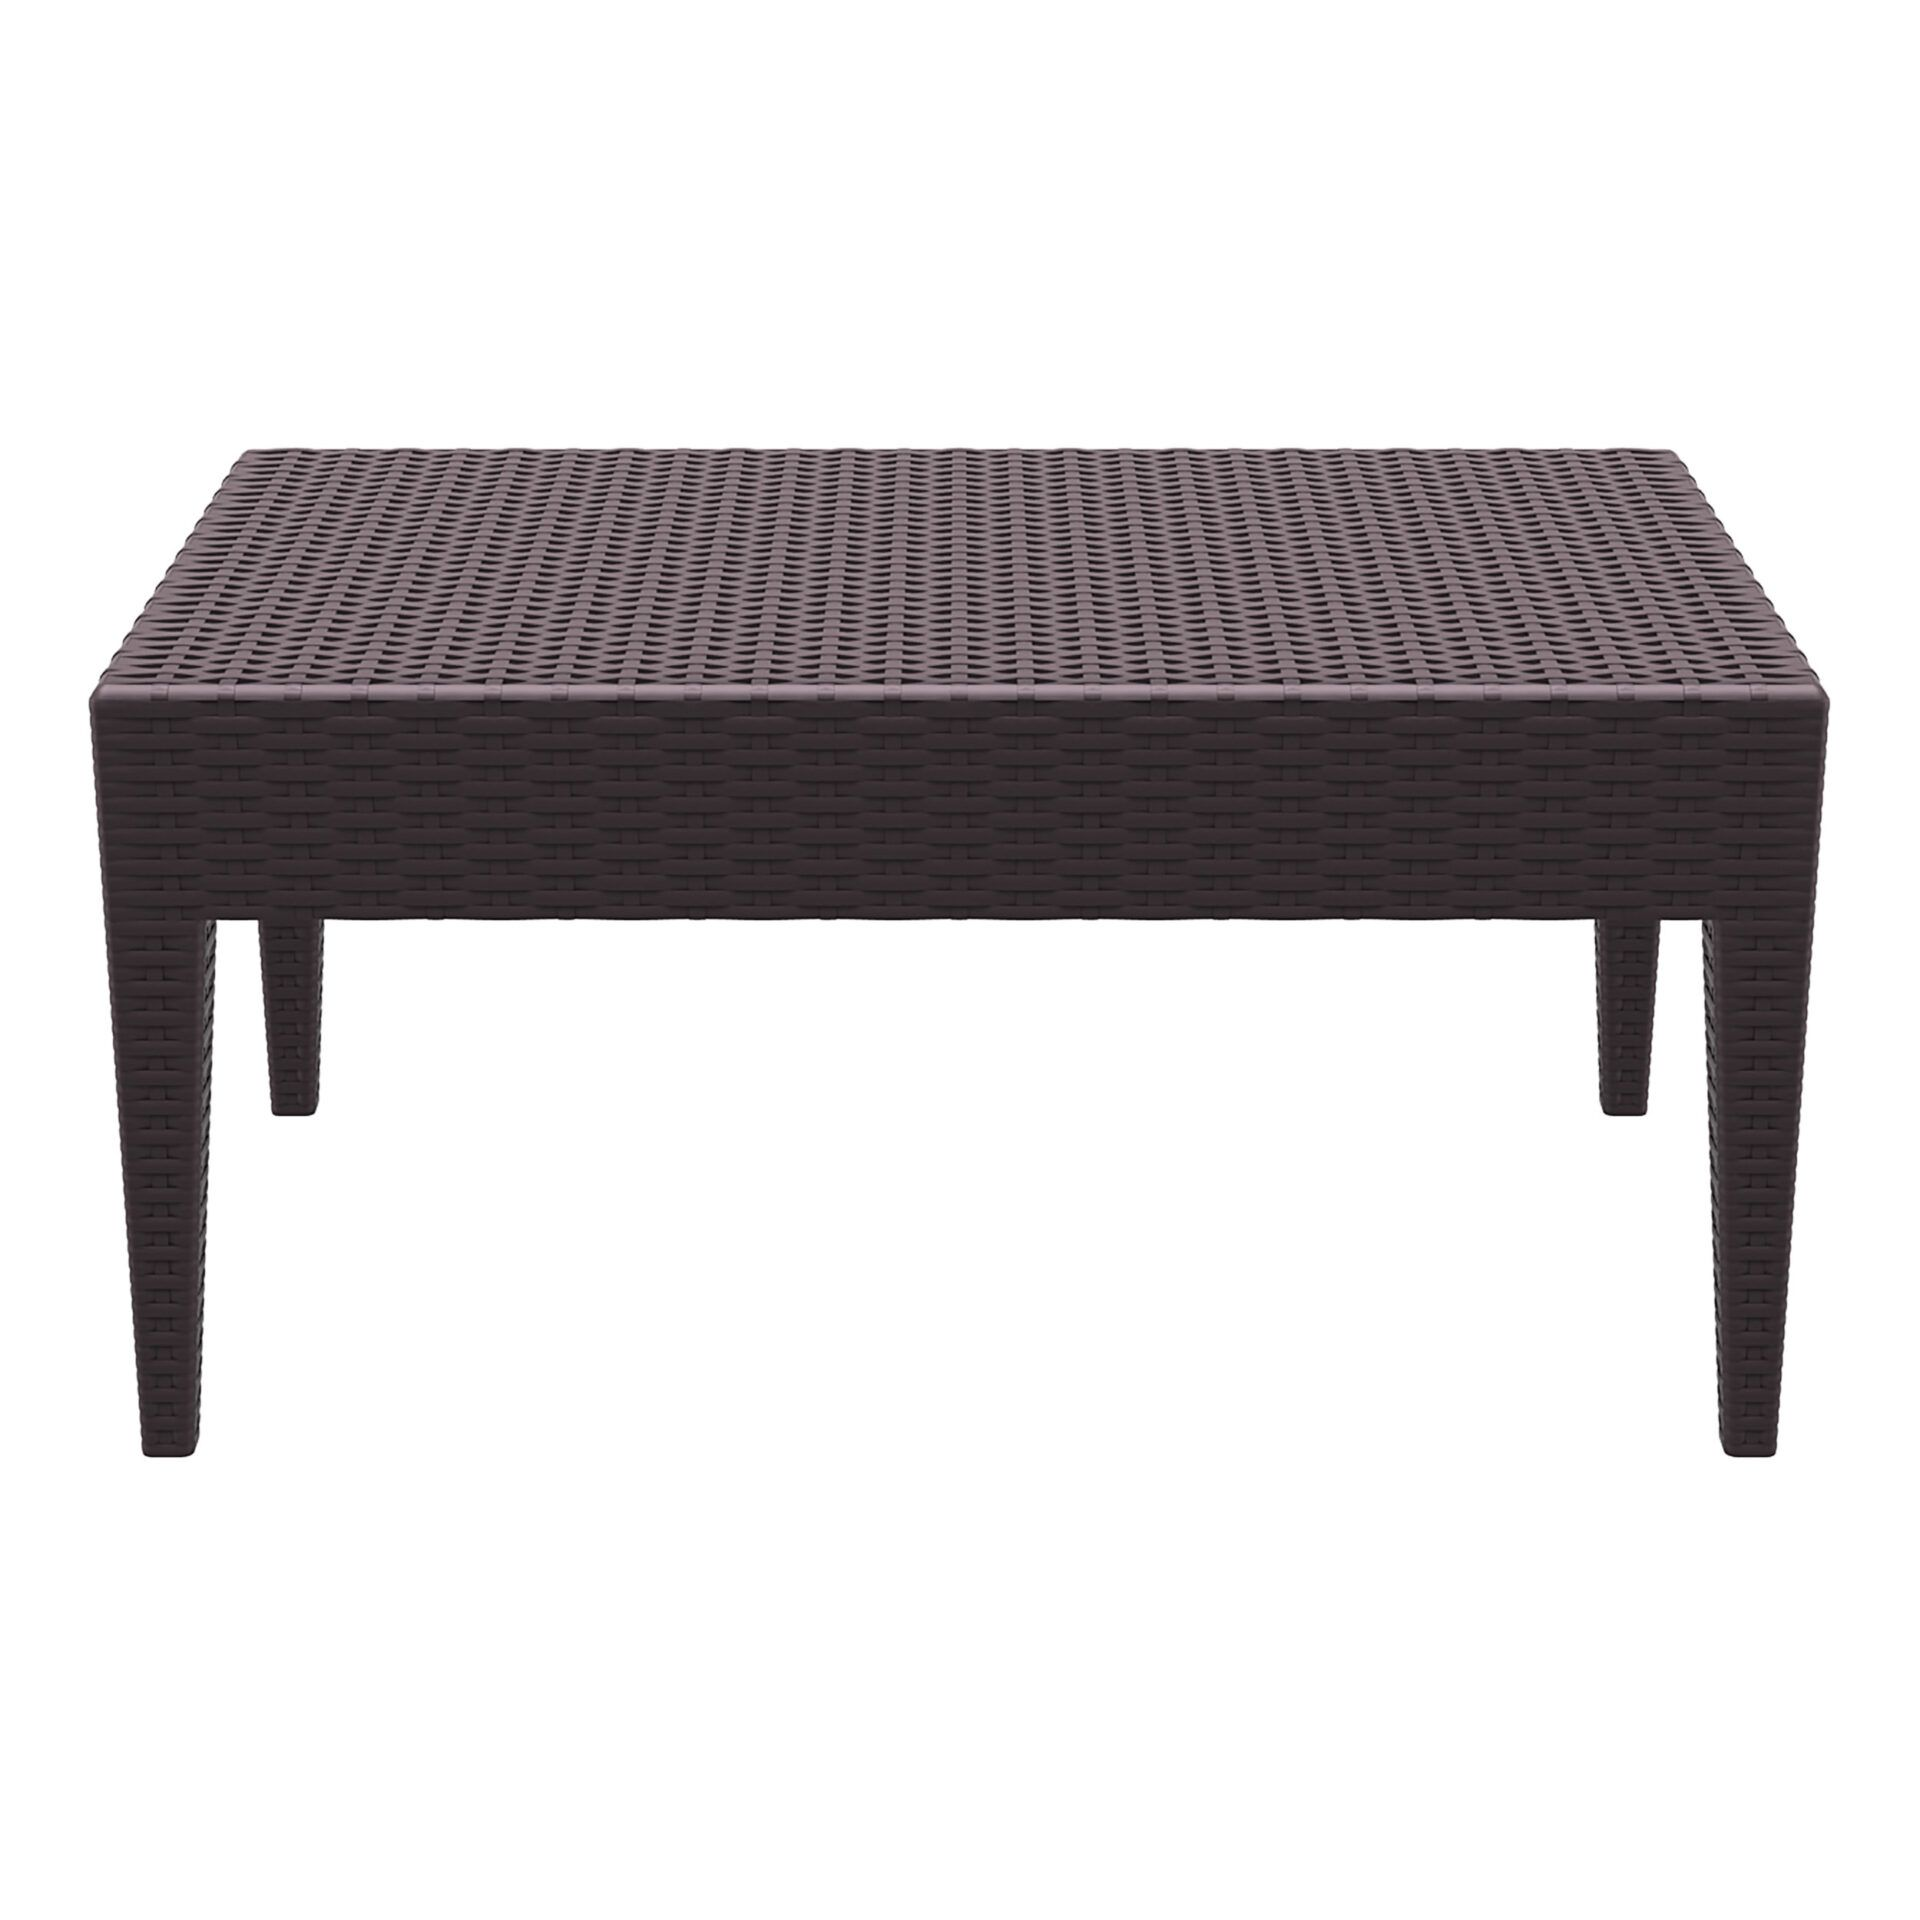 resin rattan miami tequila lounge table brown long edge